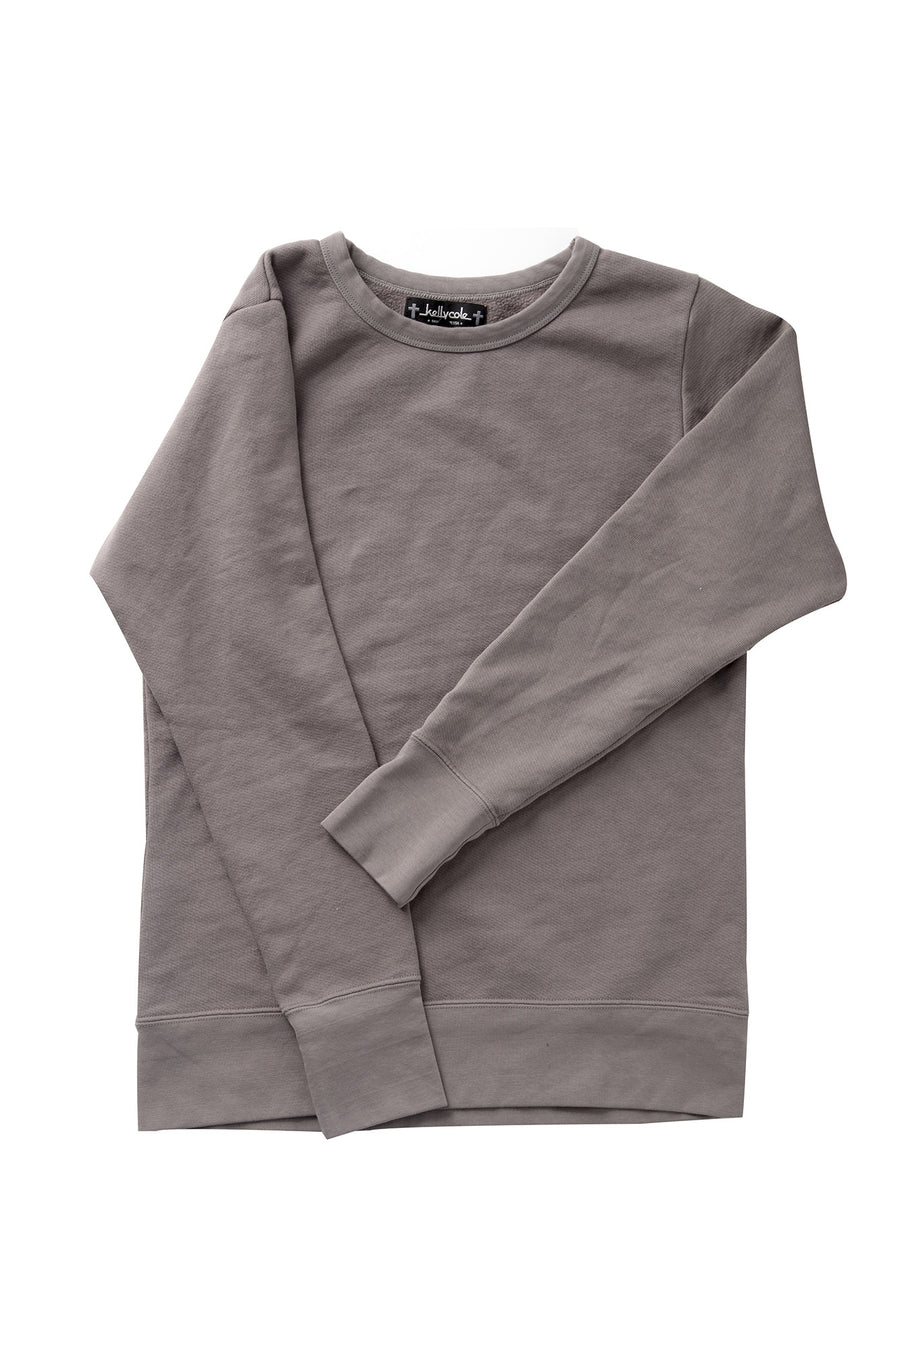 Kelly Cole 3rd Generation Crew Neck Sweatshirt - Kelly Cole USA